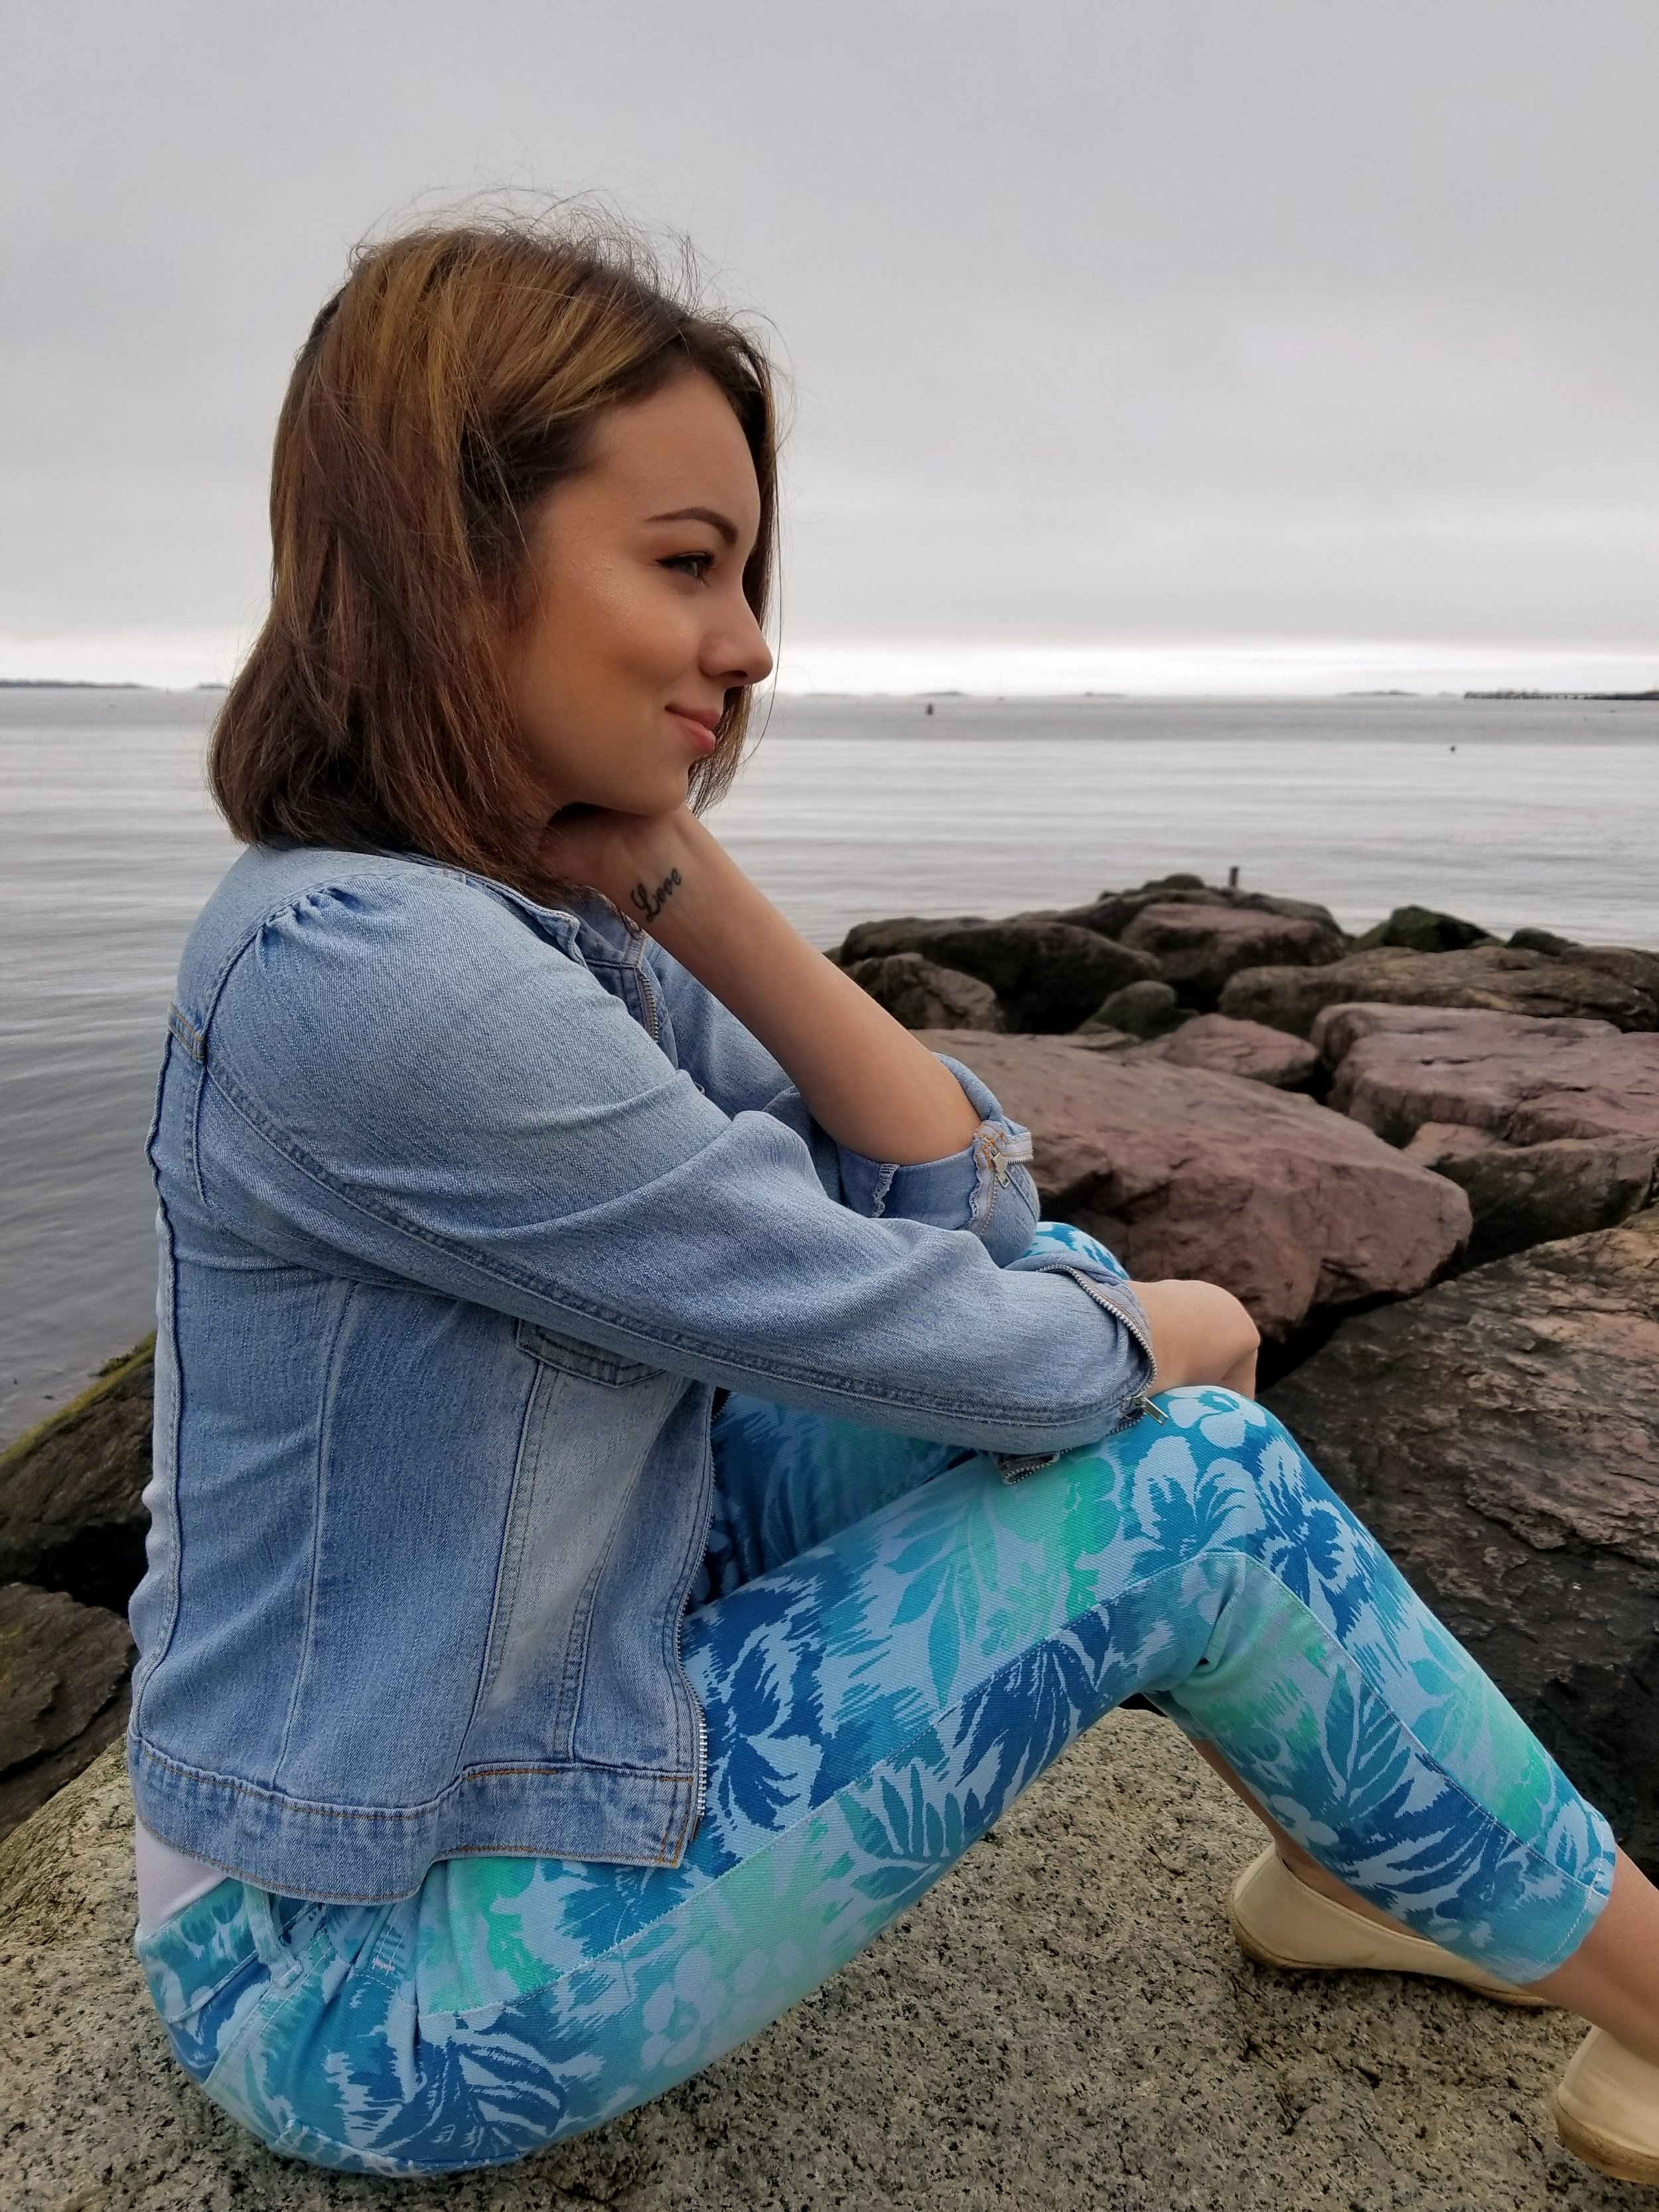 A girl sitting on the rocks by the beach, wearing pants with blue and green pattern and jean jacket.